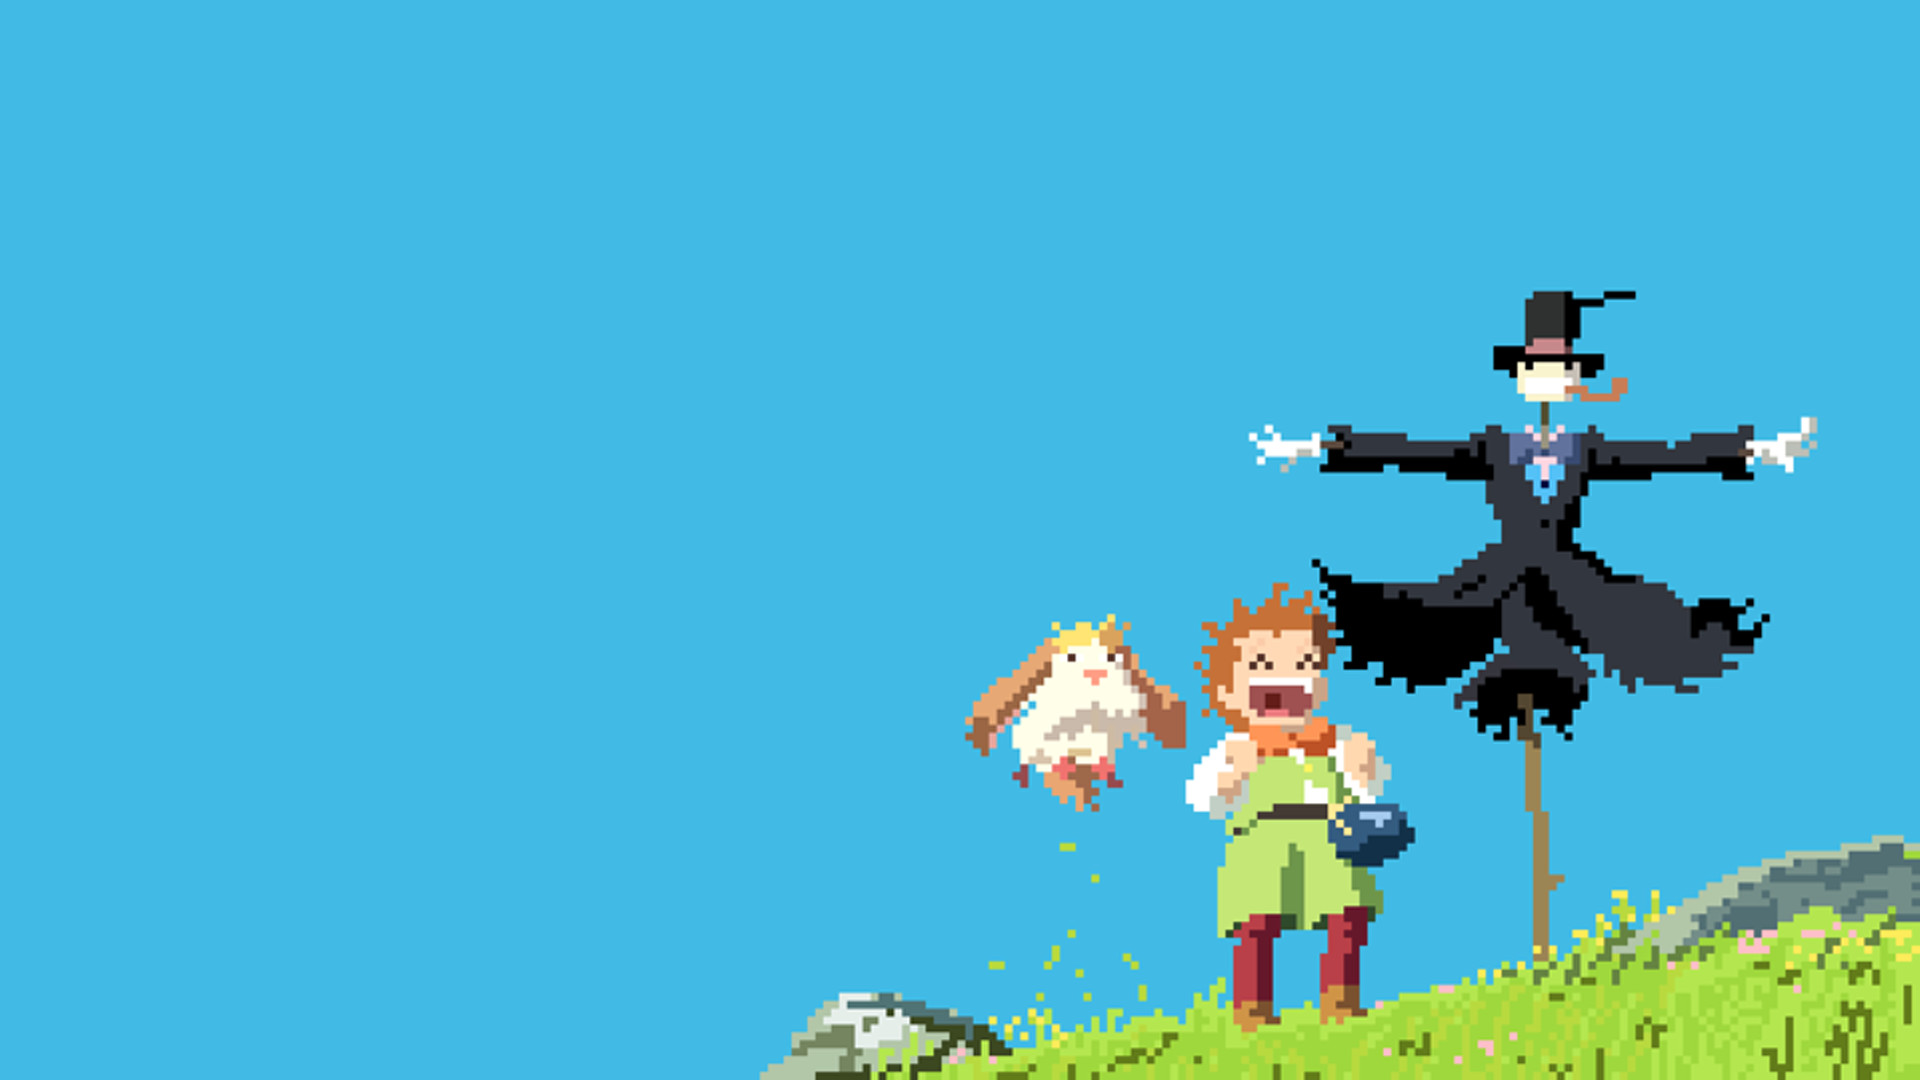 Studio Ghibli, Totoro, My Neighbor Totoro, Howls Moving Castle, Kikis  Delivery Service Wallpapers HD / Desktop and Mobile Backgrounds